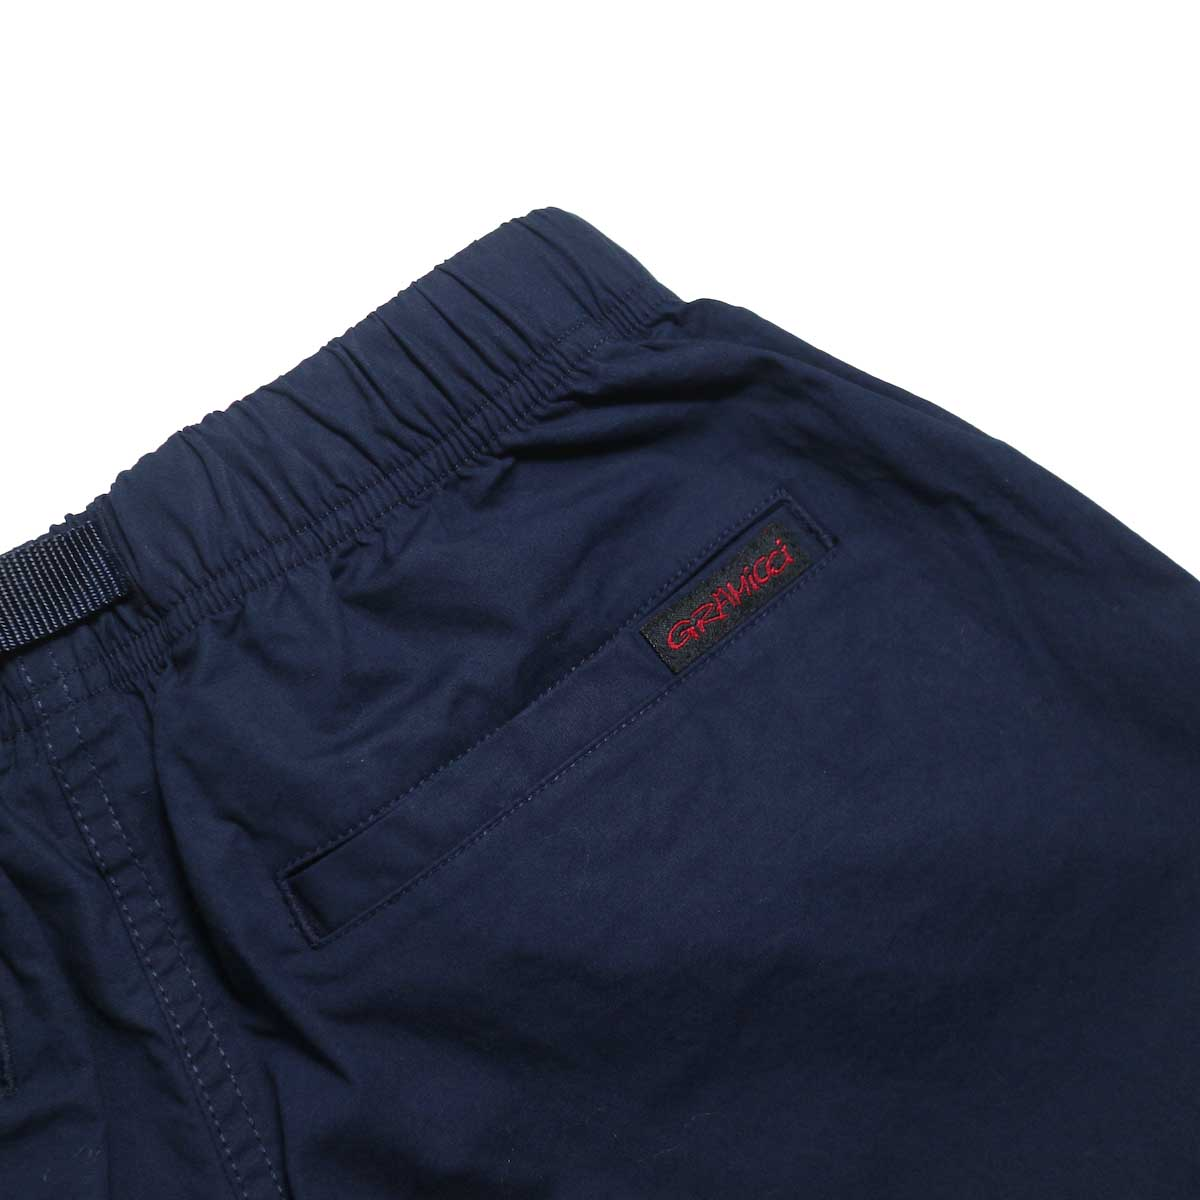 GRAMICCI / WEATHER ST-SHORTS -Double Navy ヒップポケット